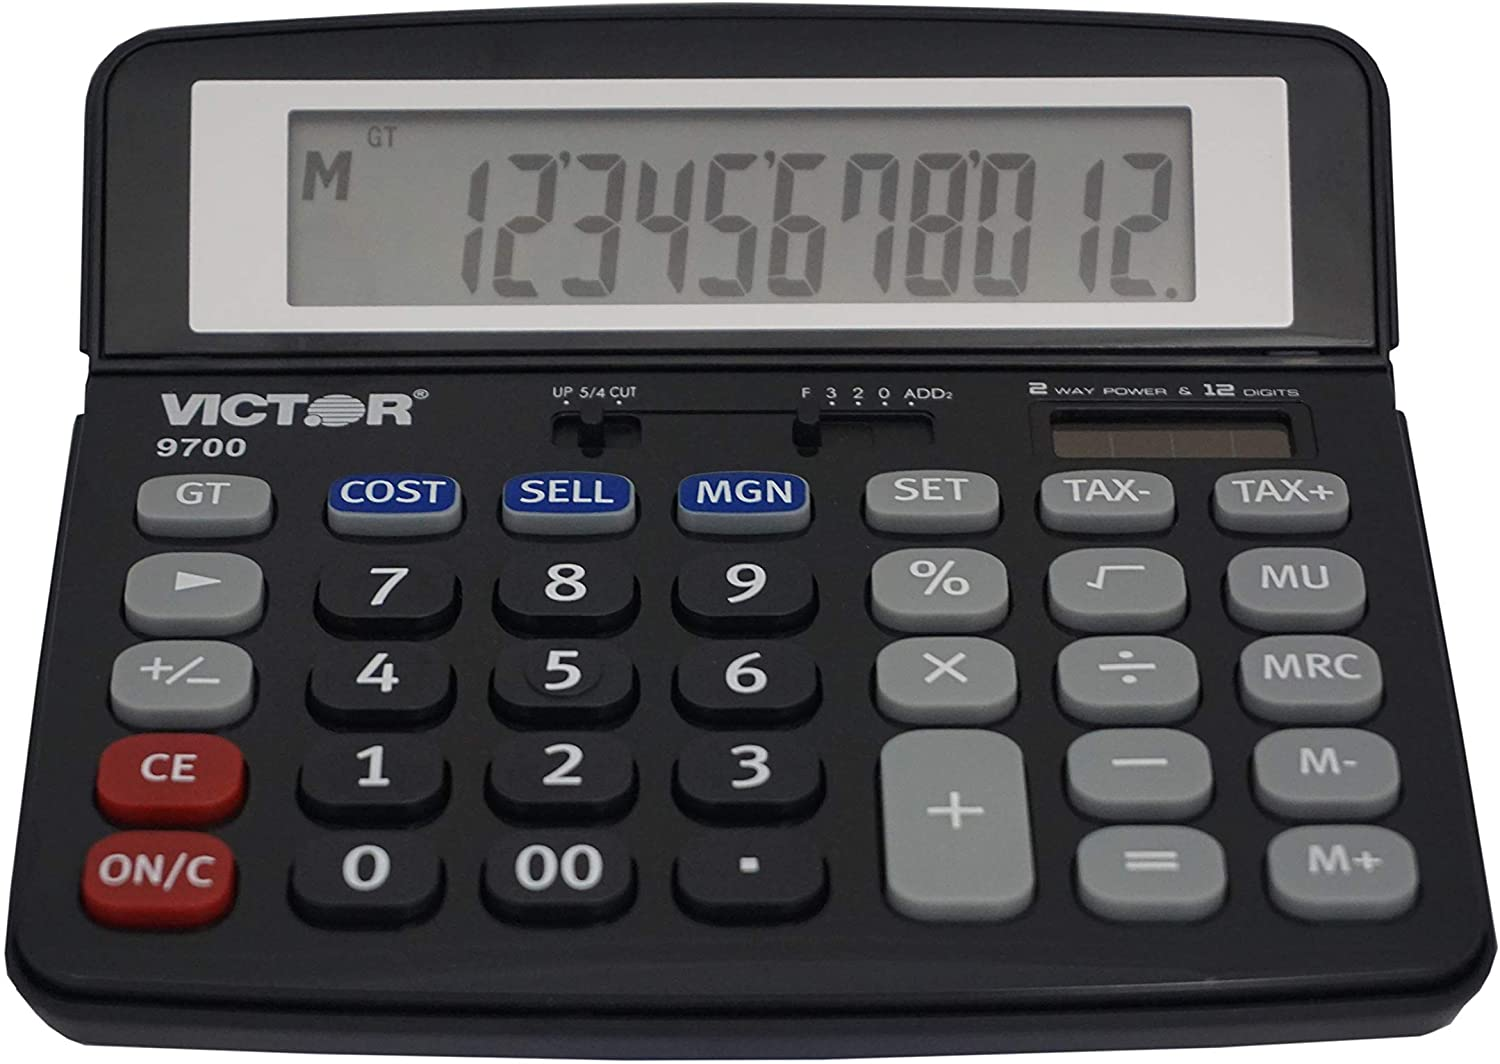 Victor 9700 12-Digit Standard Function Business Calculator, Battery and Solar Hybrid Powered Tilt LCD Display, Great for Home and Office Use, Black